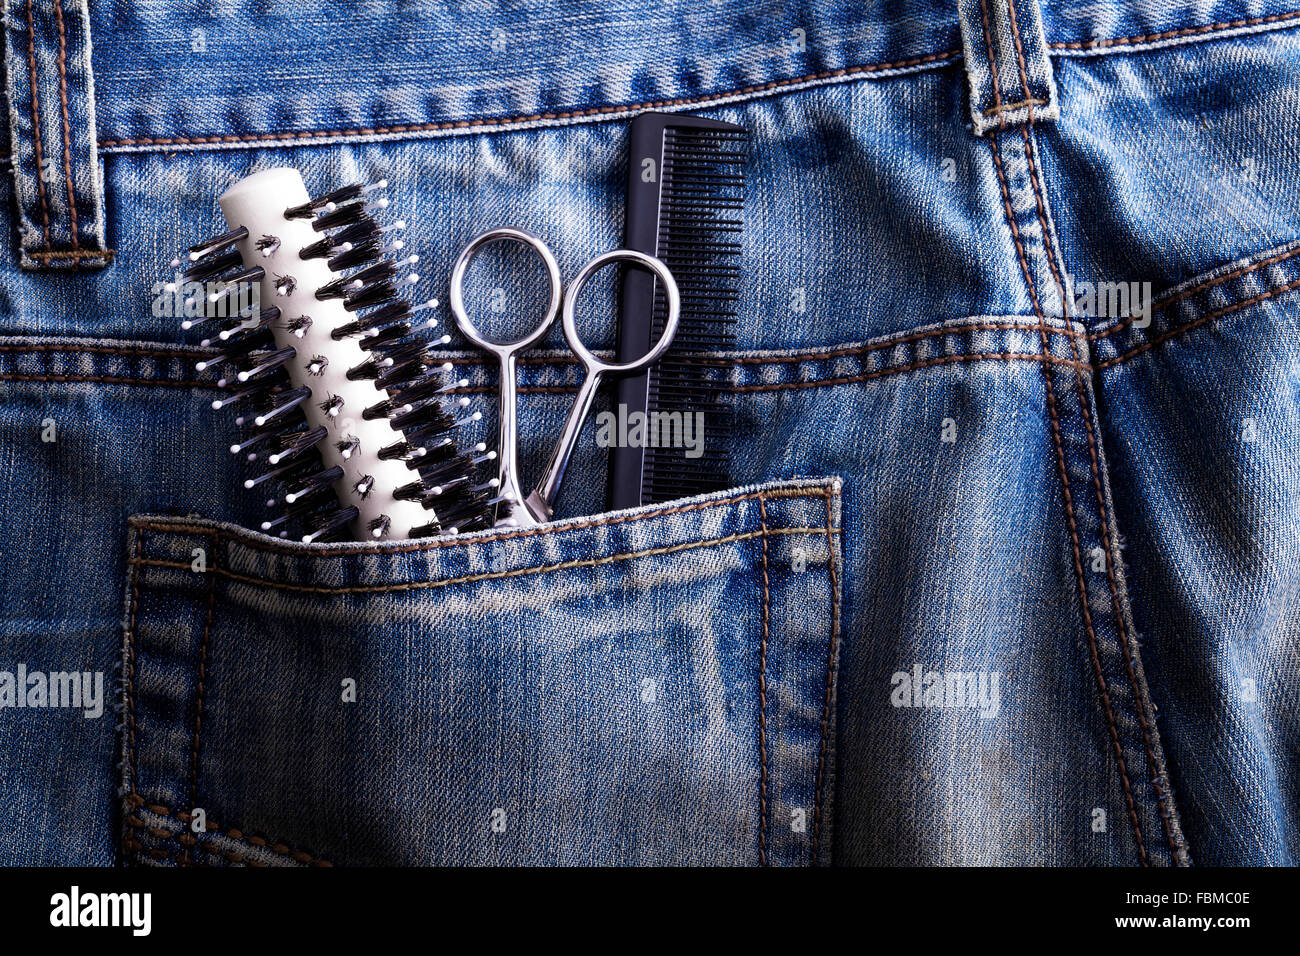 Brush, scissors and comb in the pocket of jeans - Stock Image